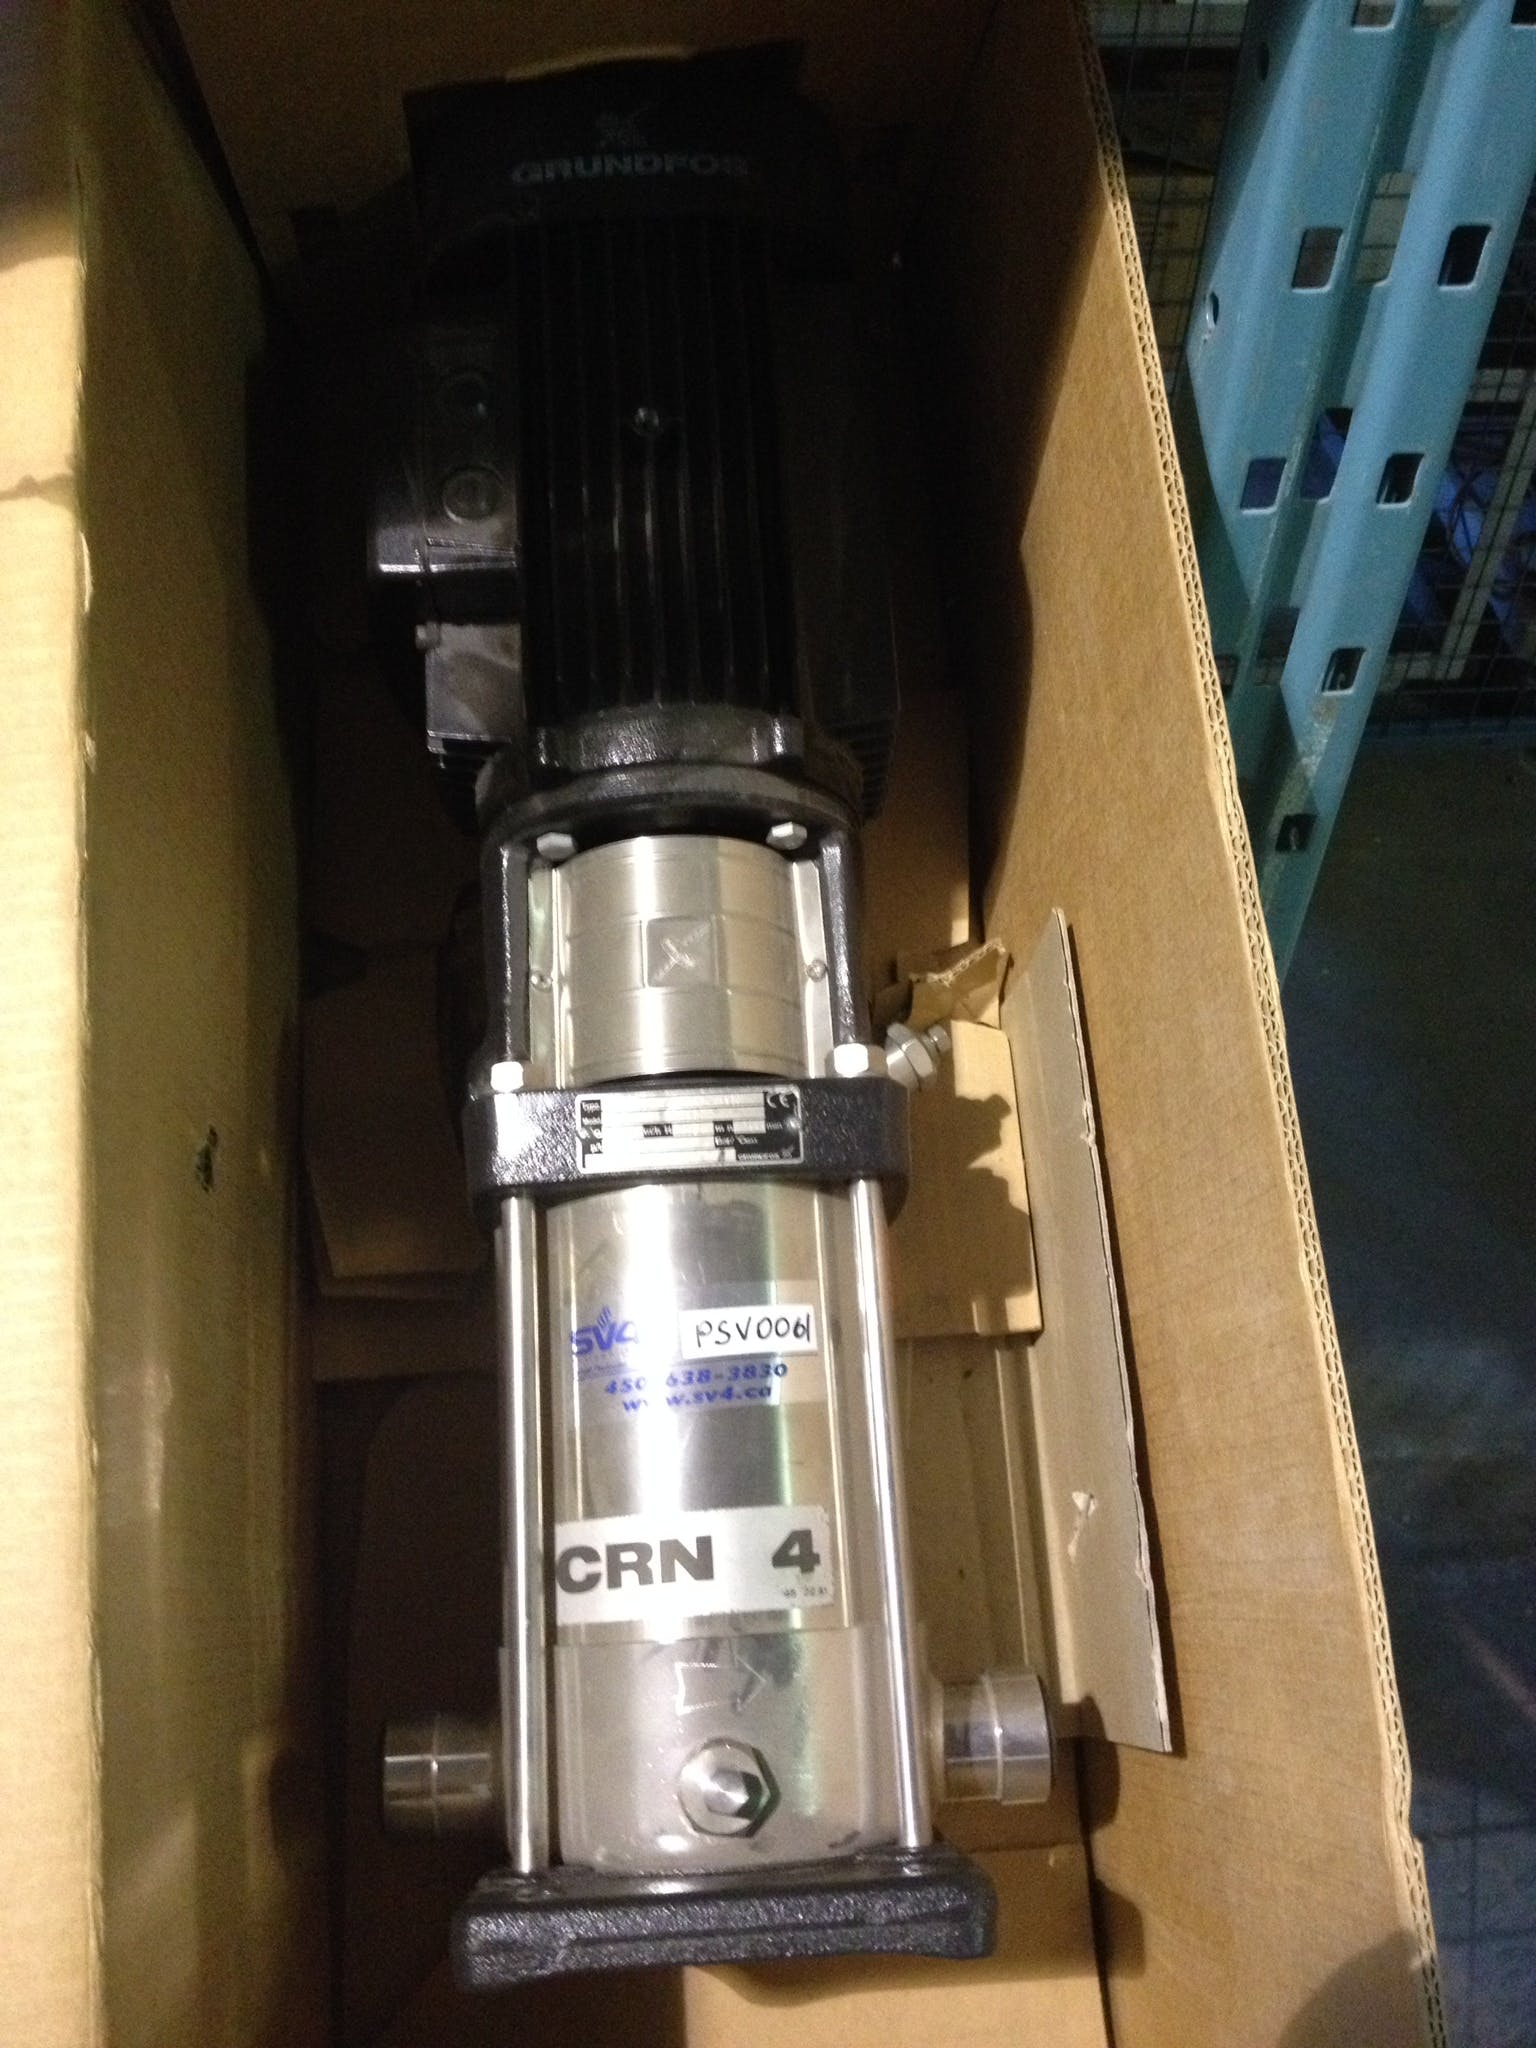 GRUNDFOS CRN 4-60 A-P-G-AUUV Process Pump Transfer pump sold by Aevos Equipment